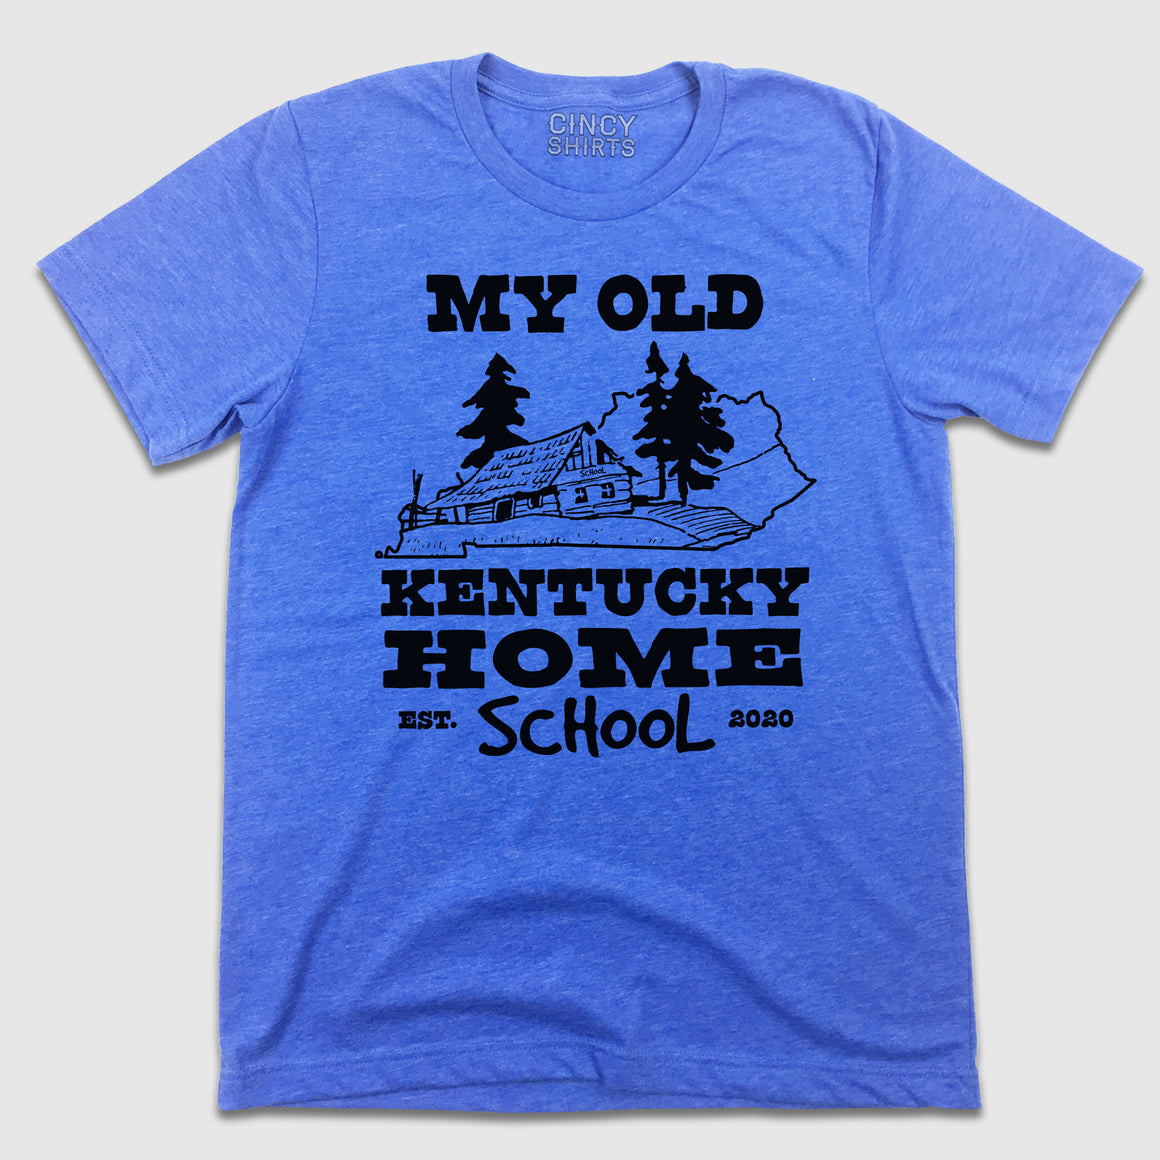 My Old Kentucky Home School 2020 - Cincy Shirts